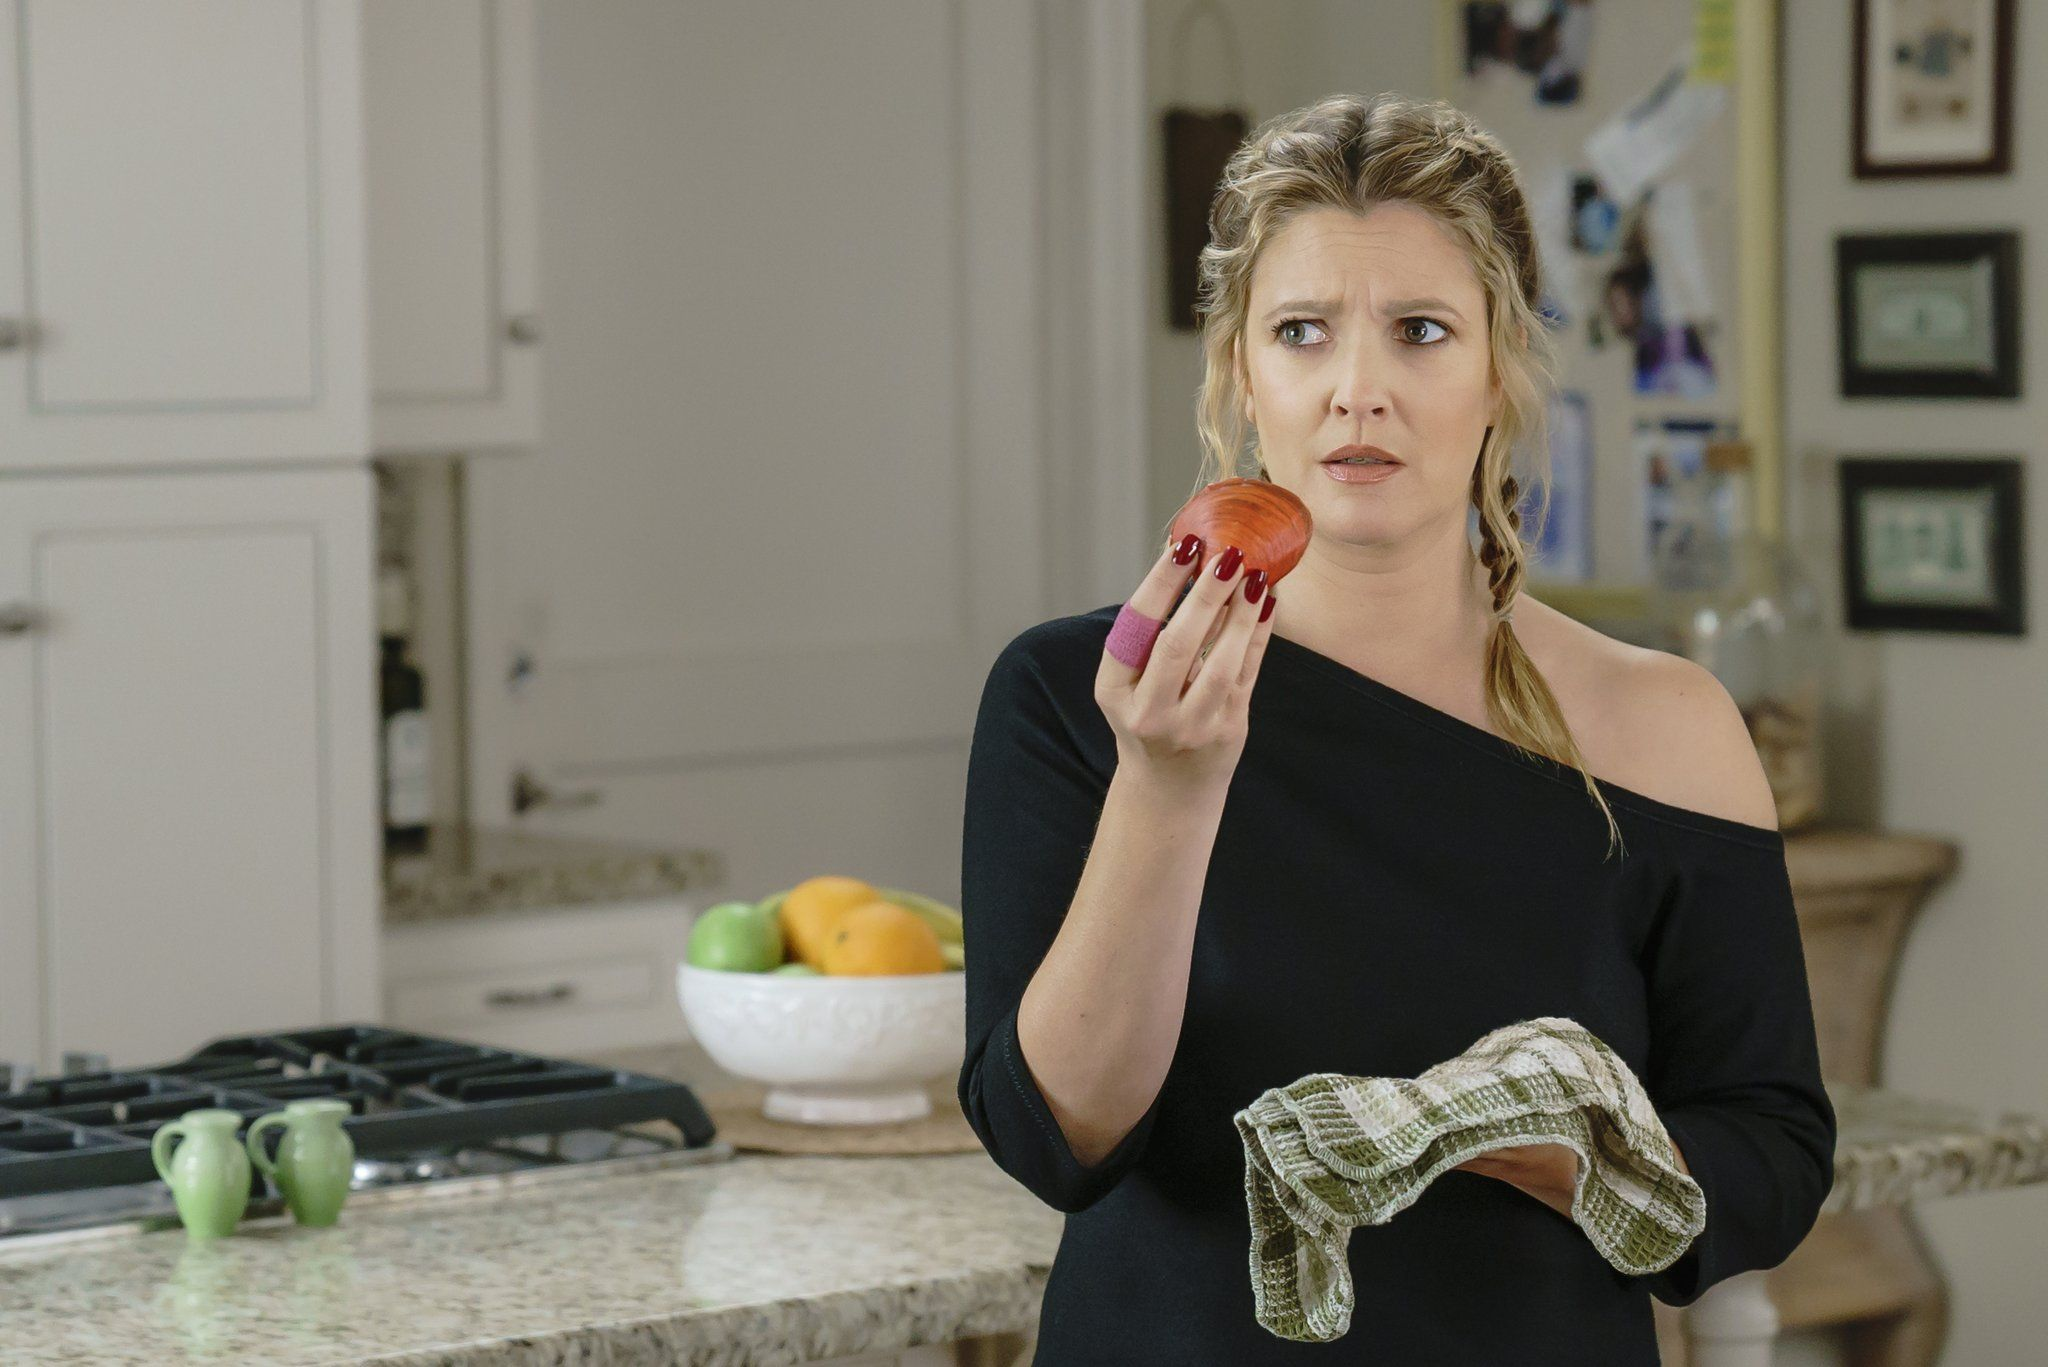 Drew Barrymore santa clarita diet looking at fruit